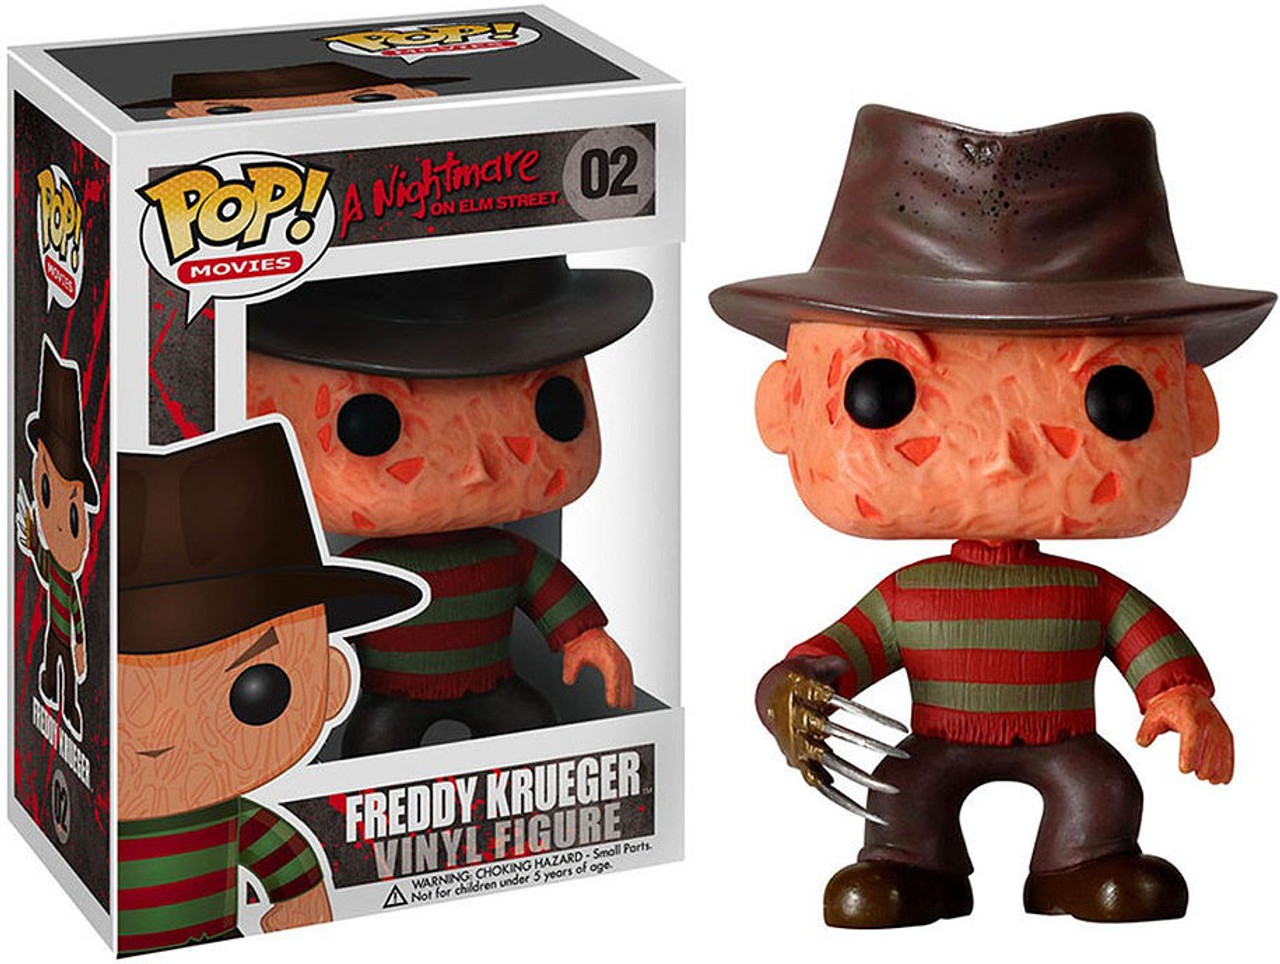 Funko Movies Vinyl Figure n° 02 A Nightmare On Elm Street Freddy Krueger Pop